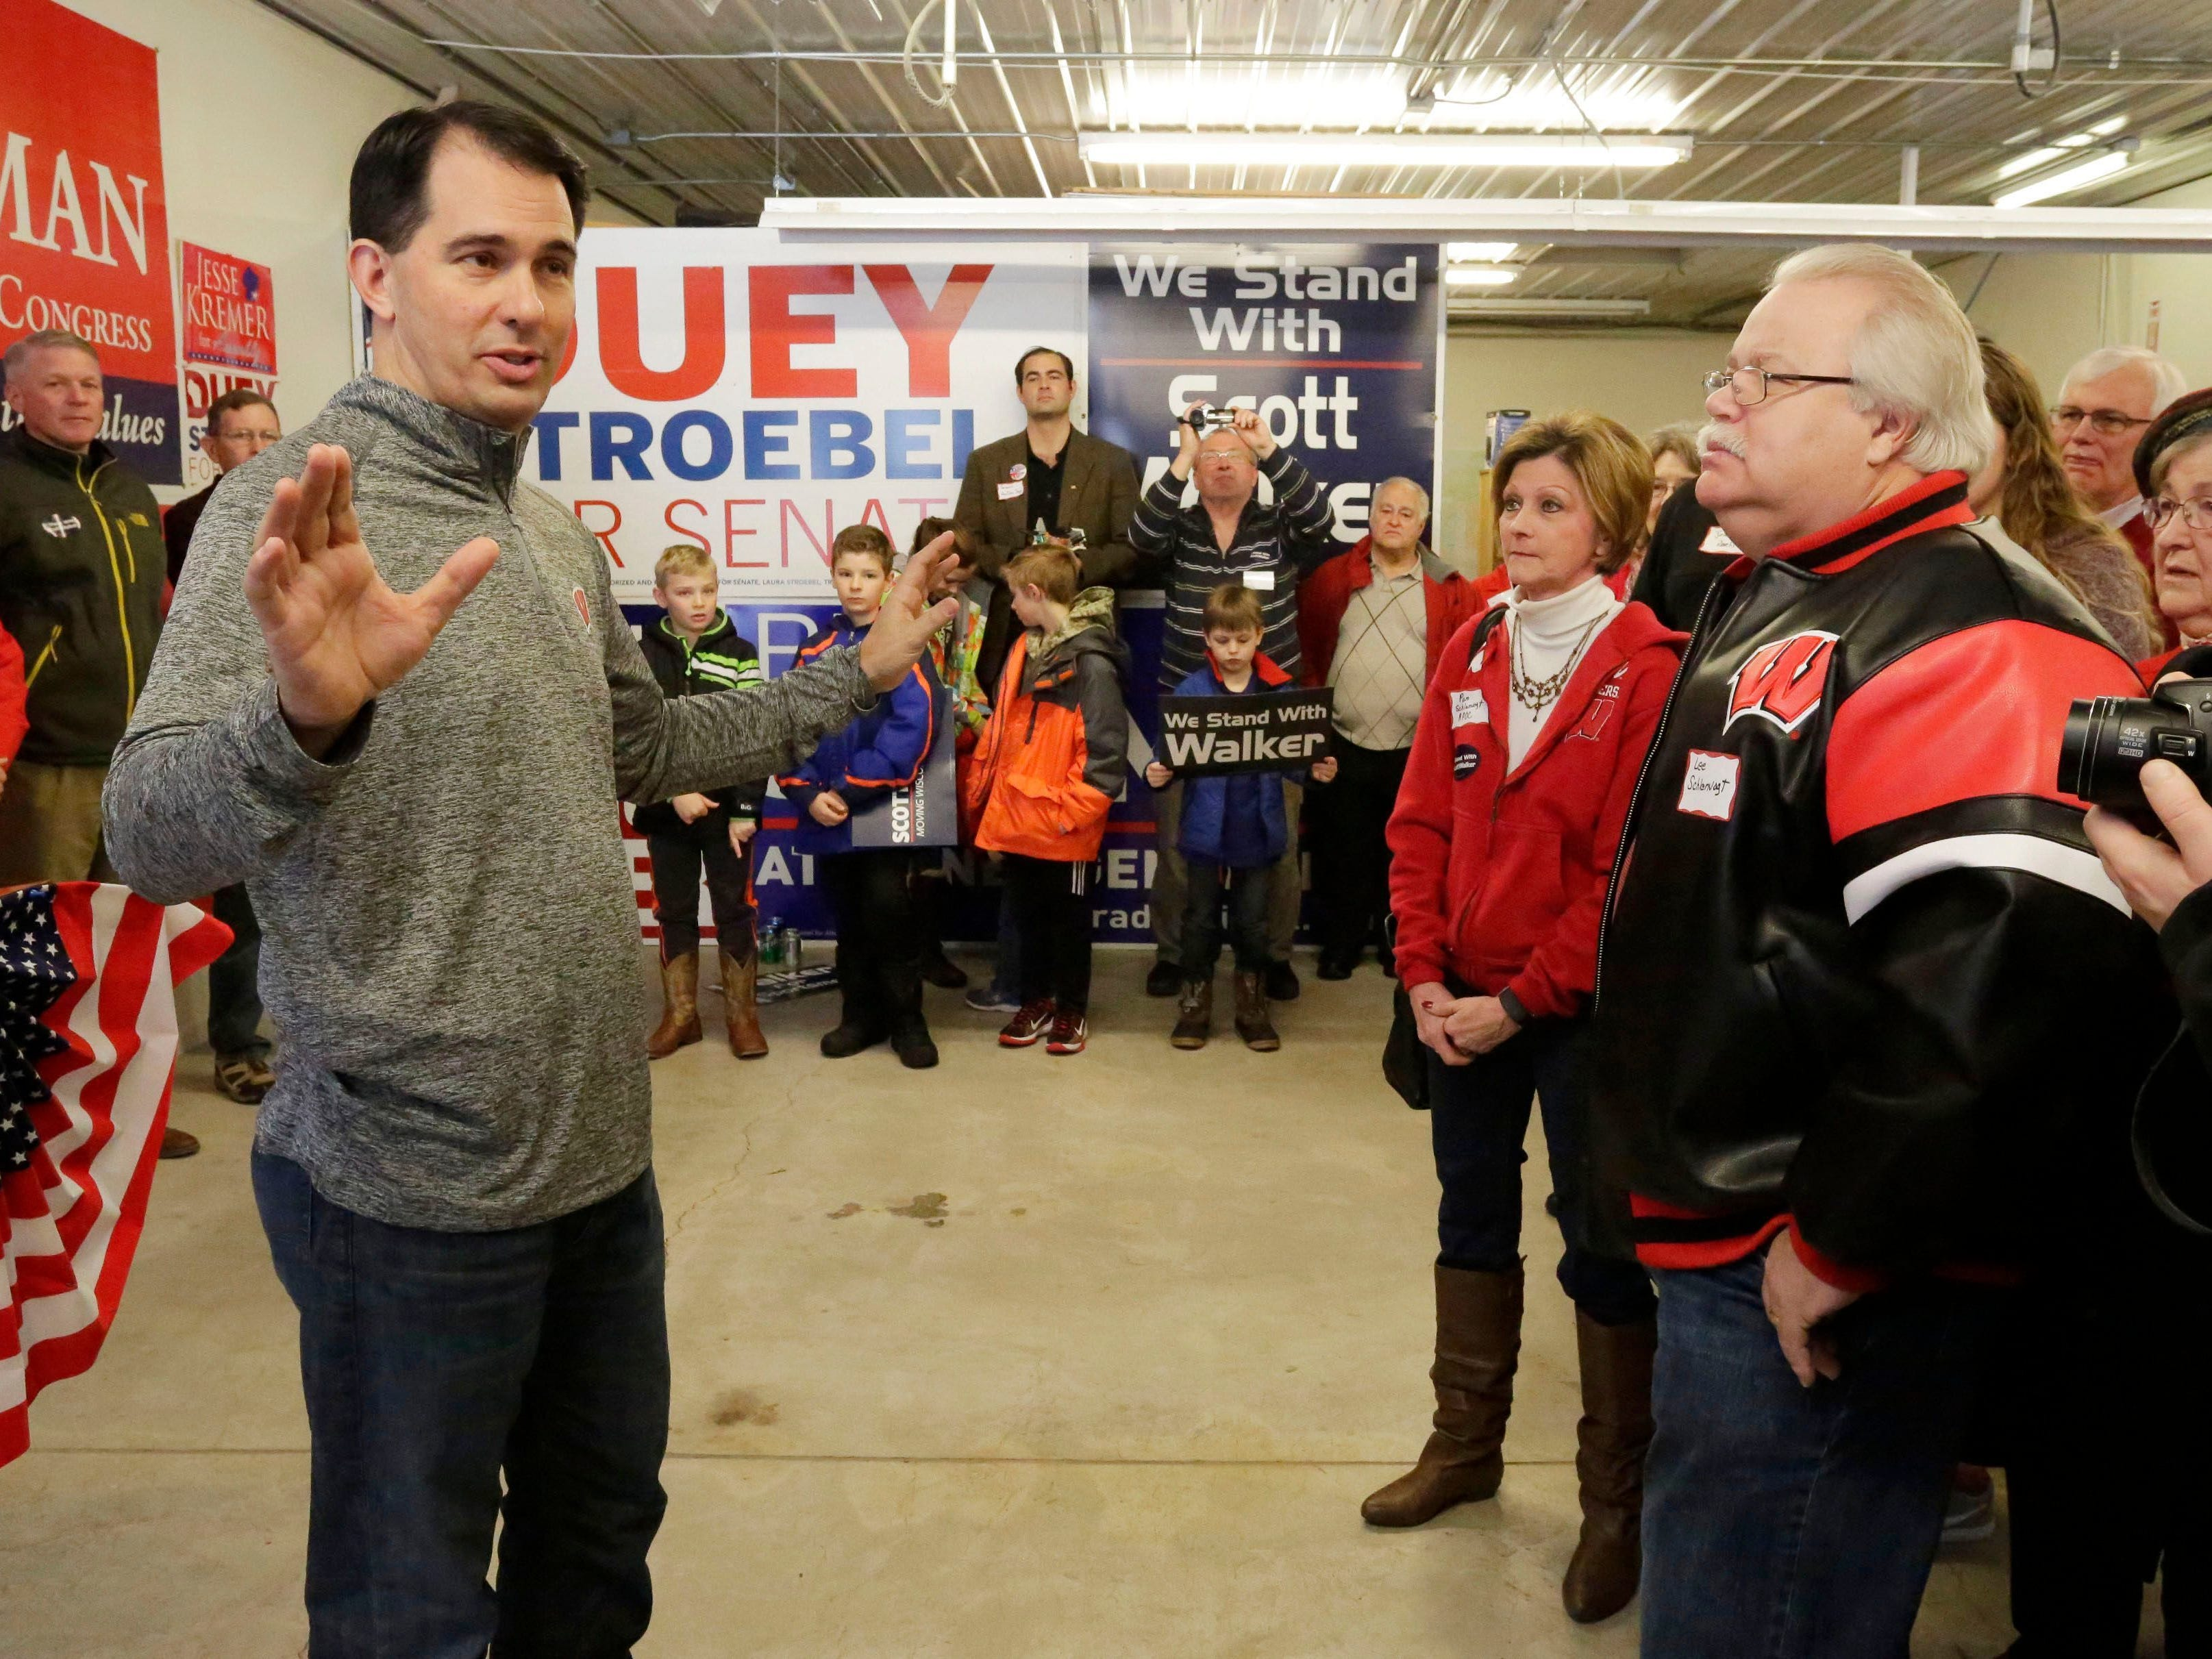 Gov. Scott Walker talks to supporters Saturday at the Sheboygan County GOP headquarters in Sheboygan.  Gary C. Klein/USA TODAY NETWORK-Wisconsin Gov. Scott Walker talks to supporters at the Sheboygan County GOP headquarters, Saturday, January 20, 2017, in Sheboygan, Wis.